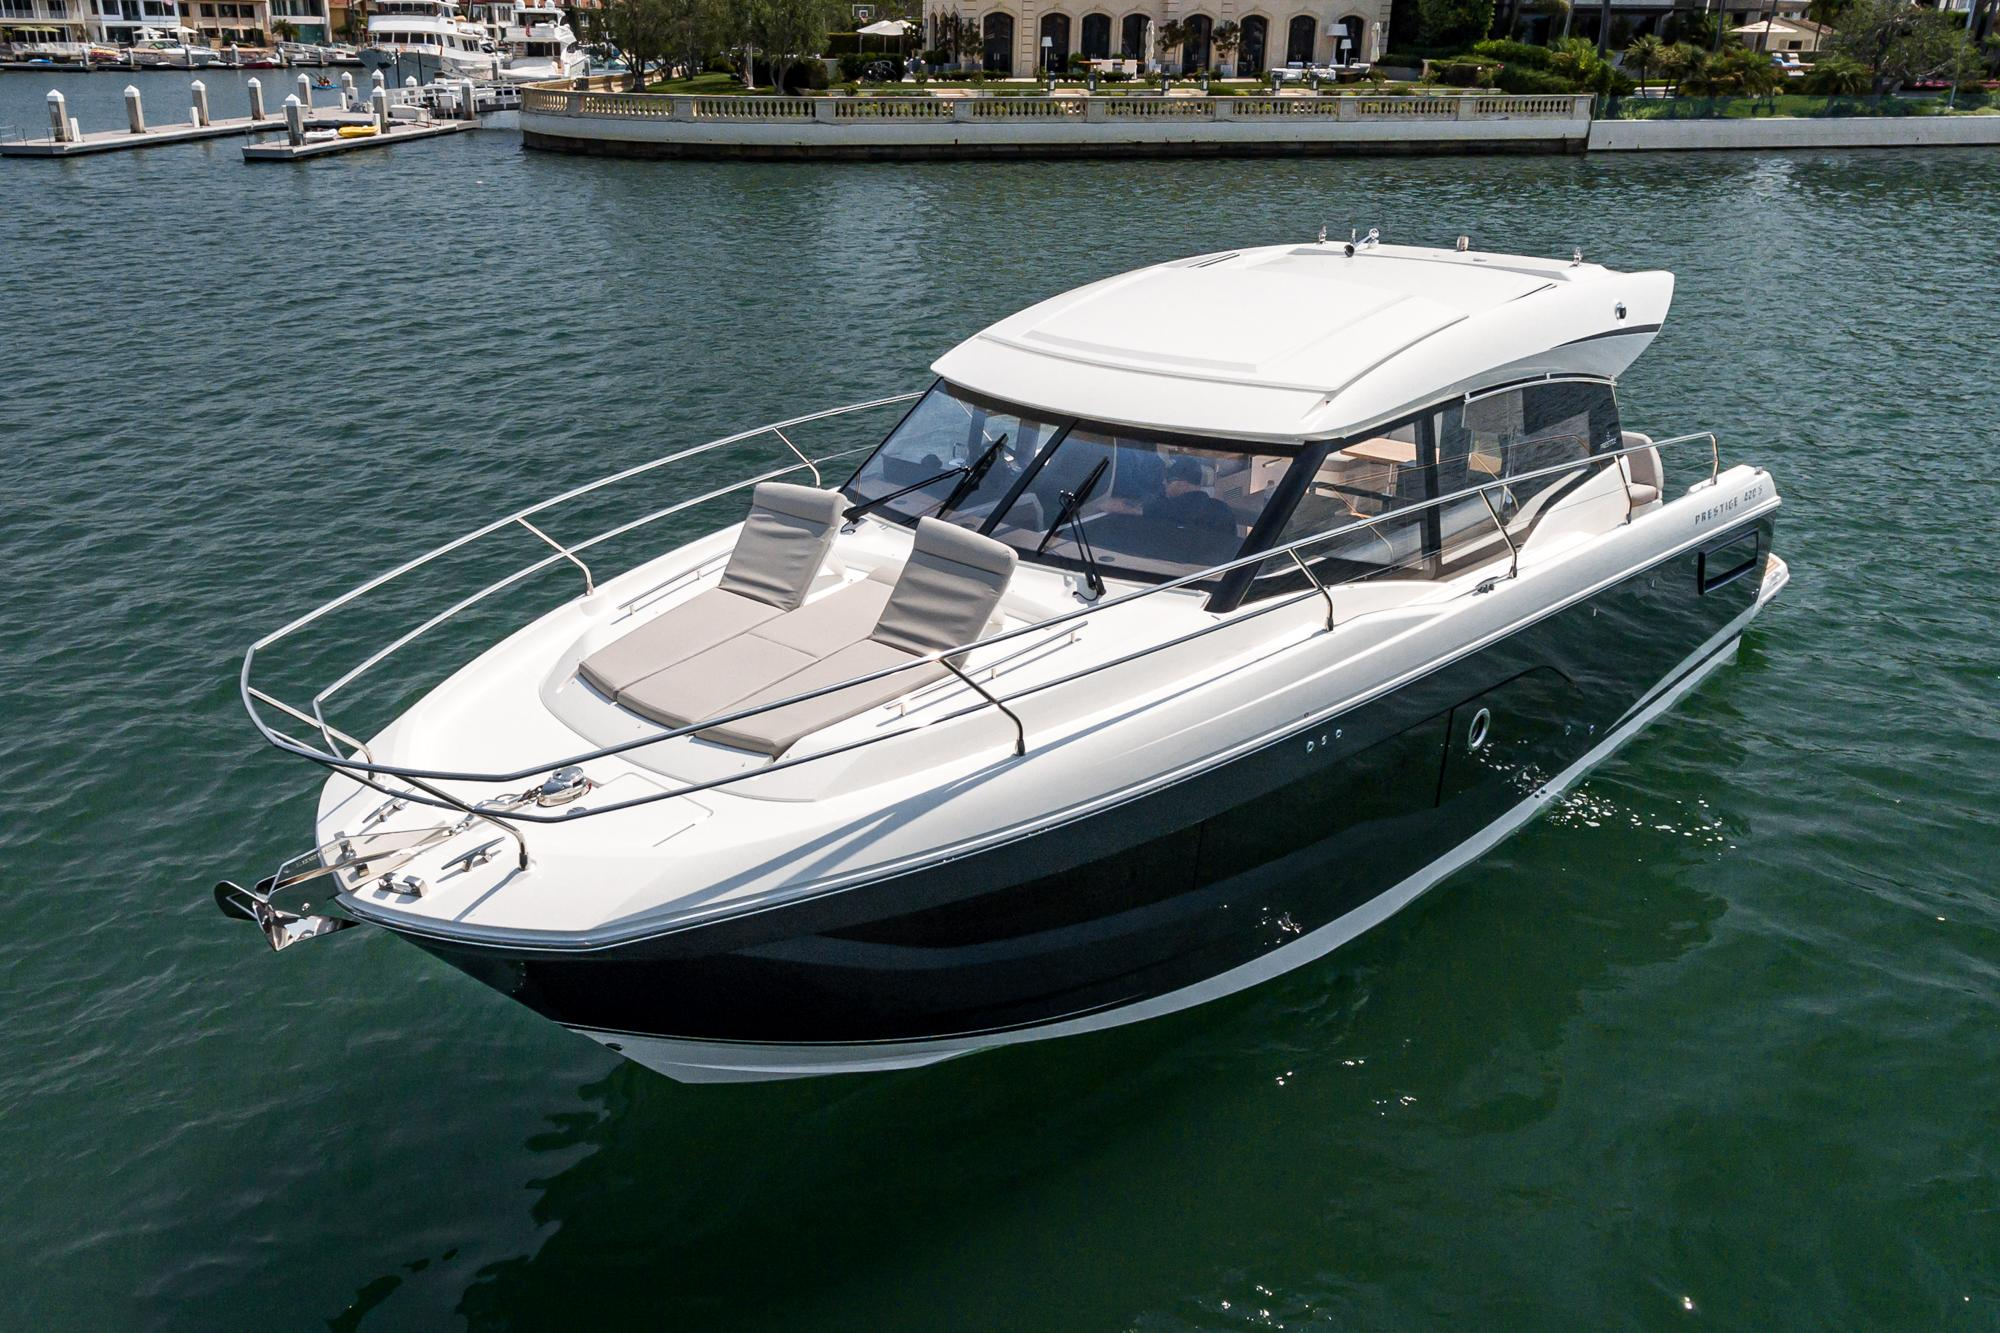 2021 Prestige 420 S #PR026F inventory image at Sun Country Coastal in San Diego